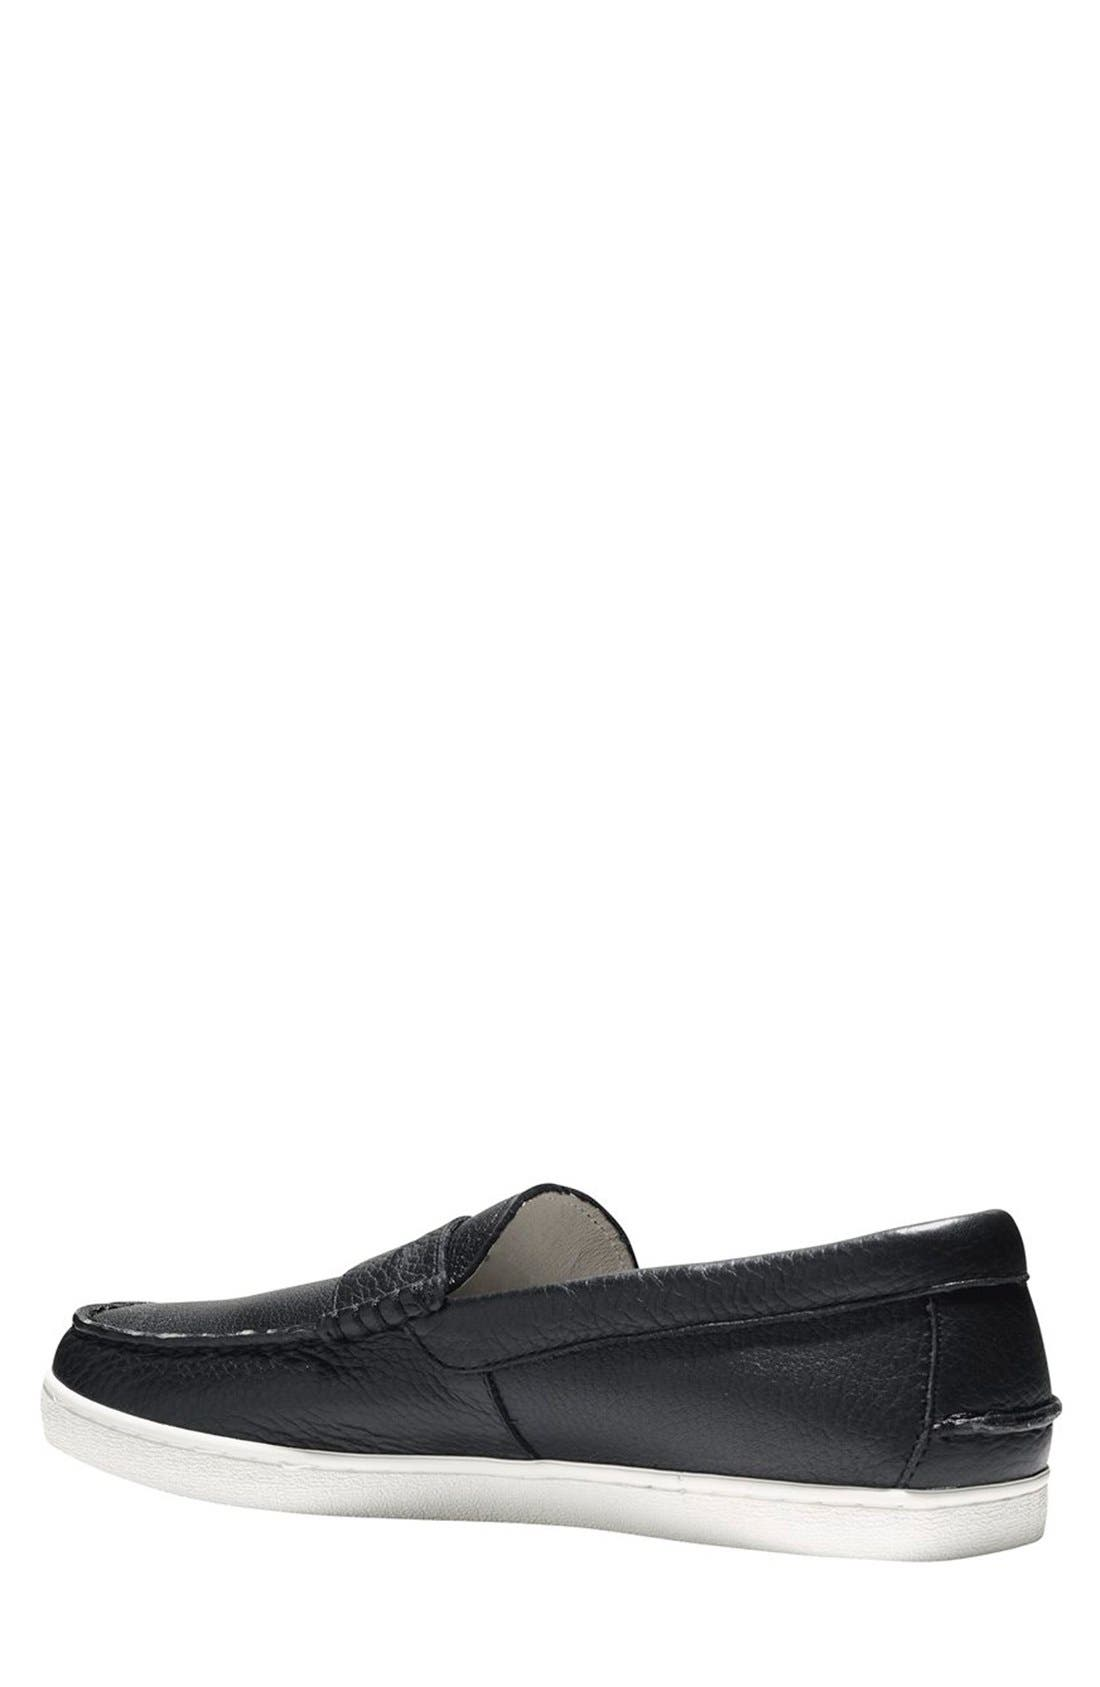 'Pinch' Penny Loafer,                             Alternate thumbnail 8, color,                             001